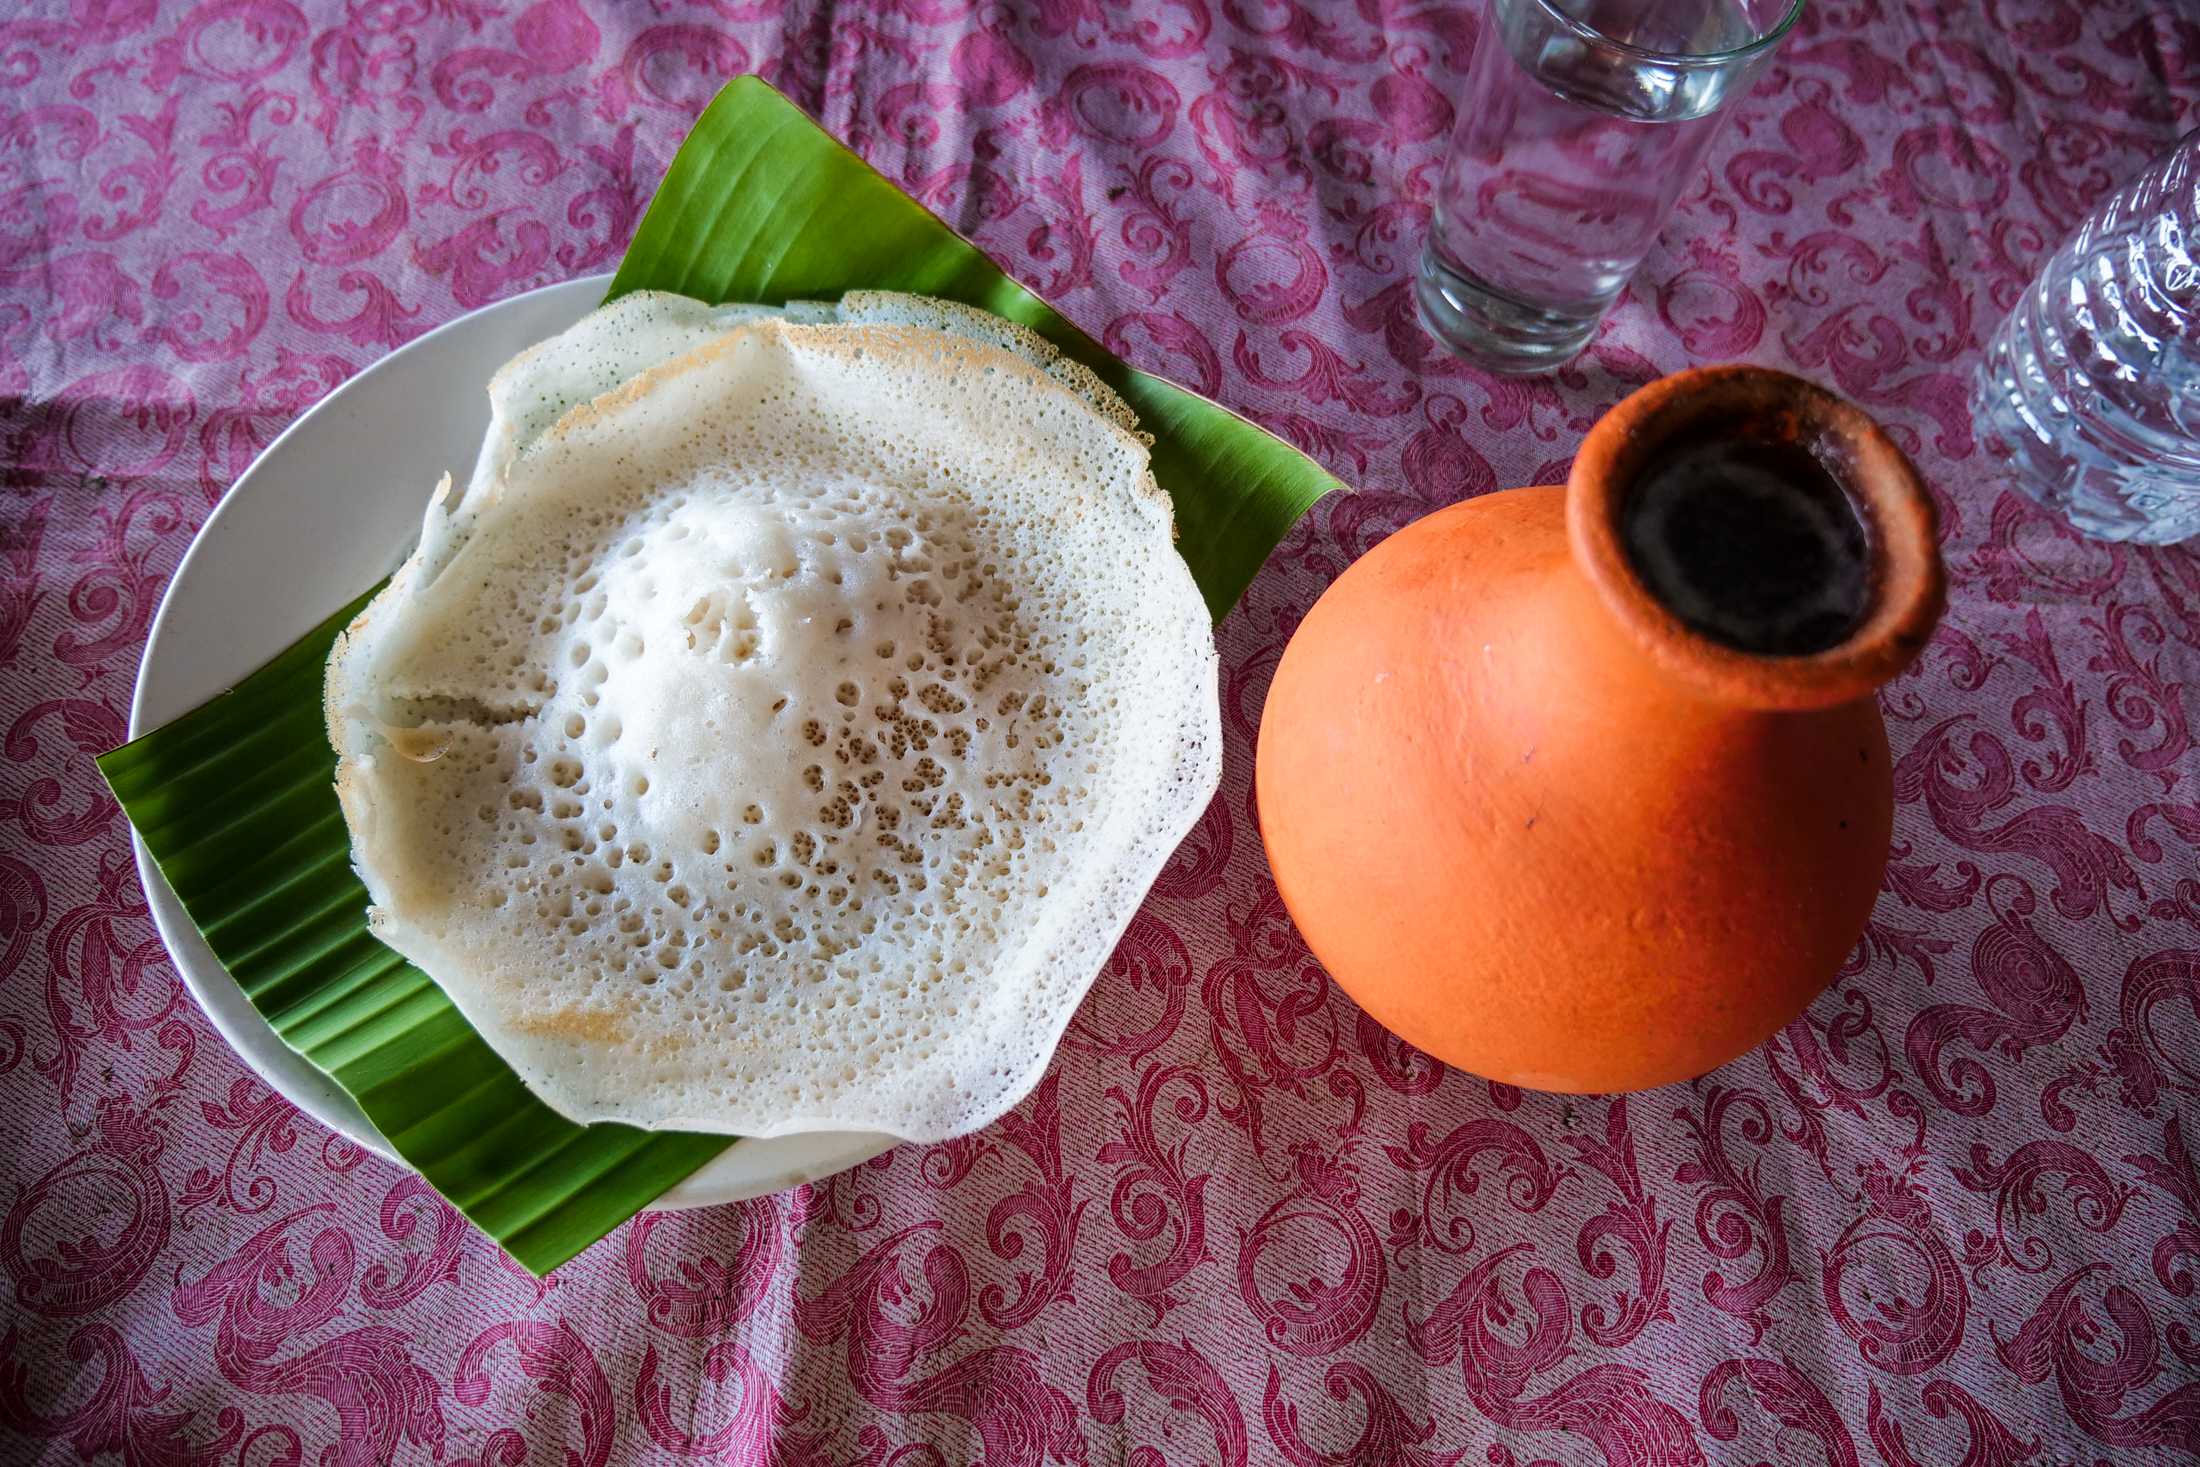 You may have eaten coconut toddy before, and not even known it!